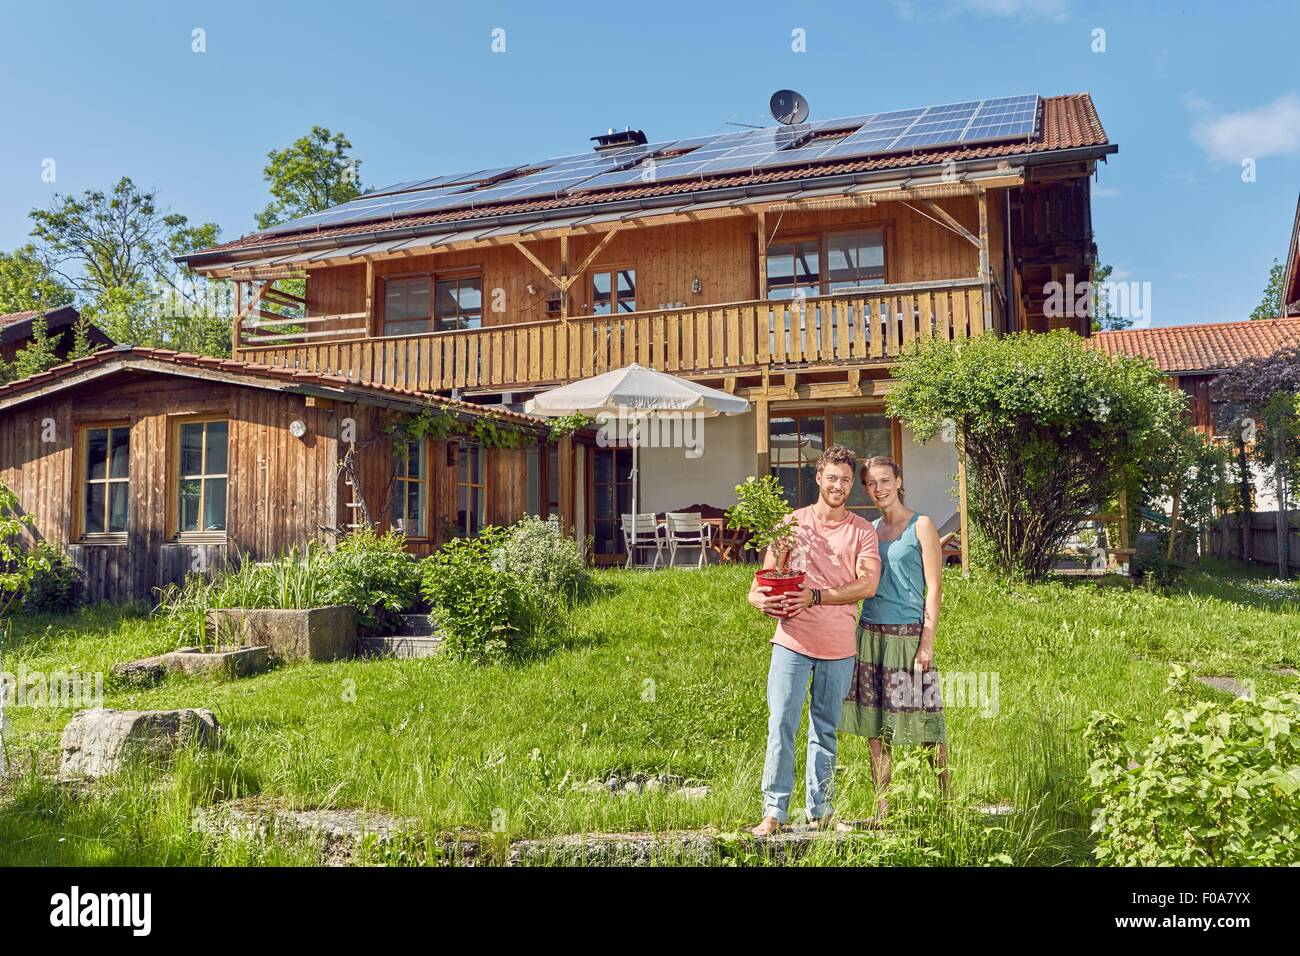 Portrait of young couple, holding pot plant, standing in front of house with solar panelled roof - Stock Image